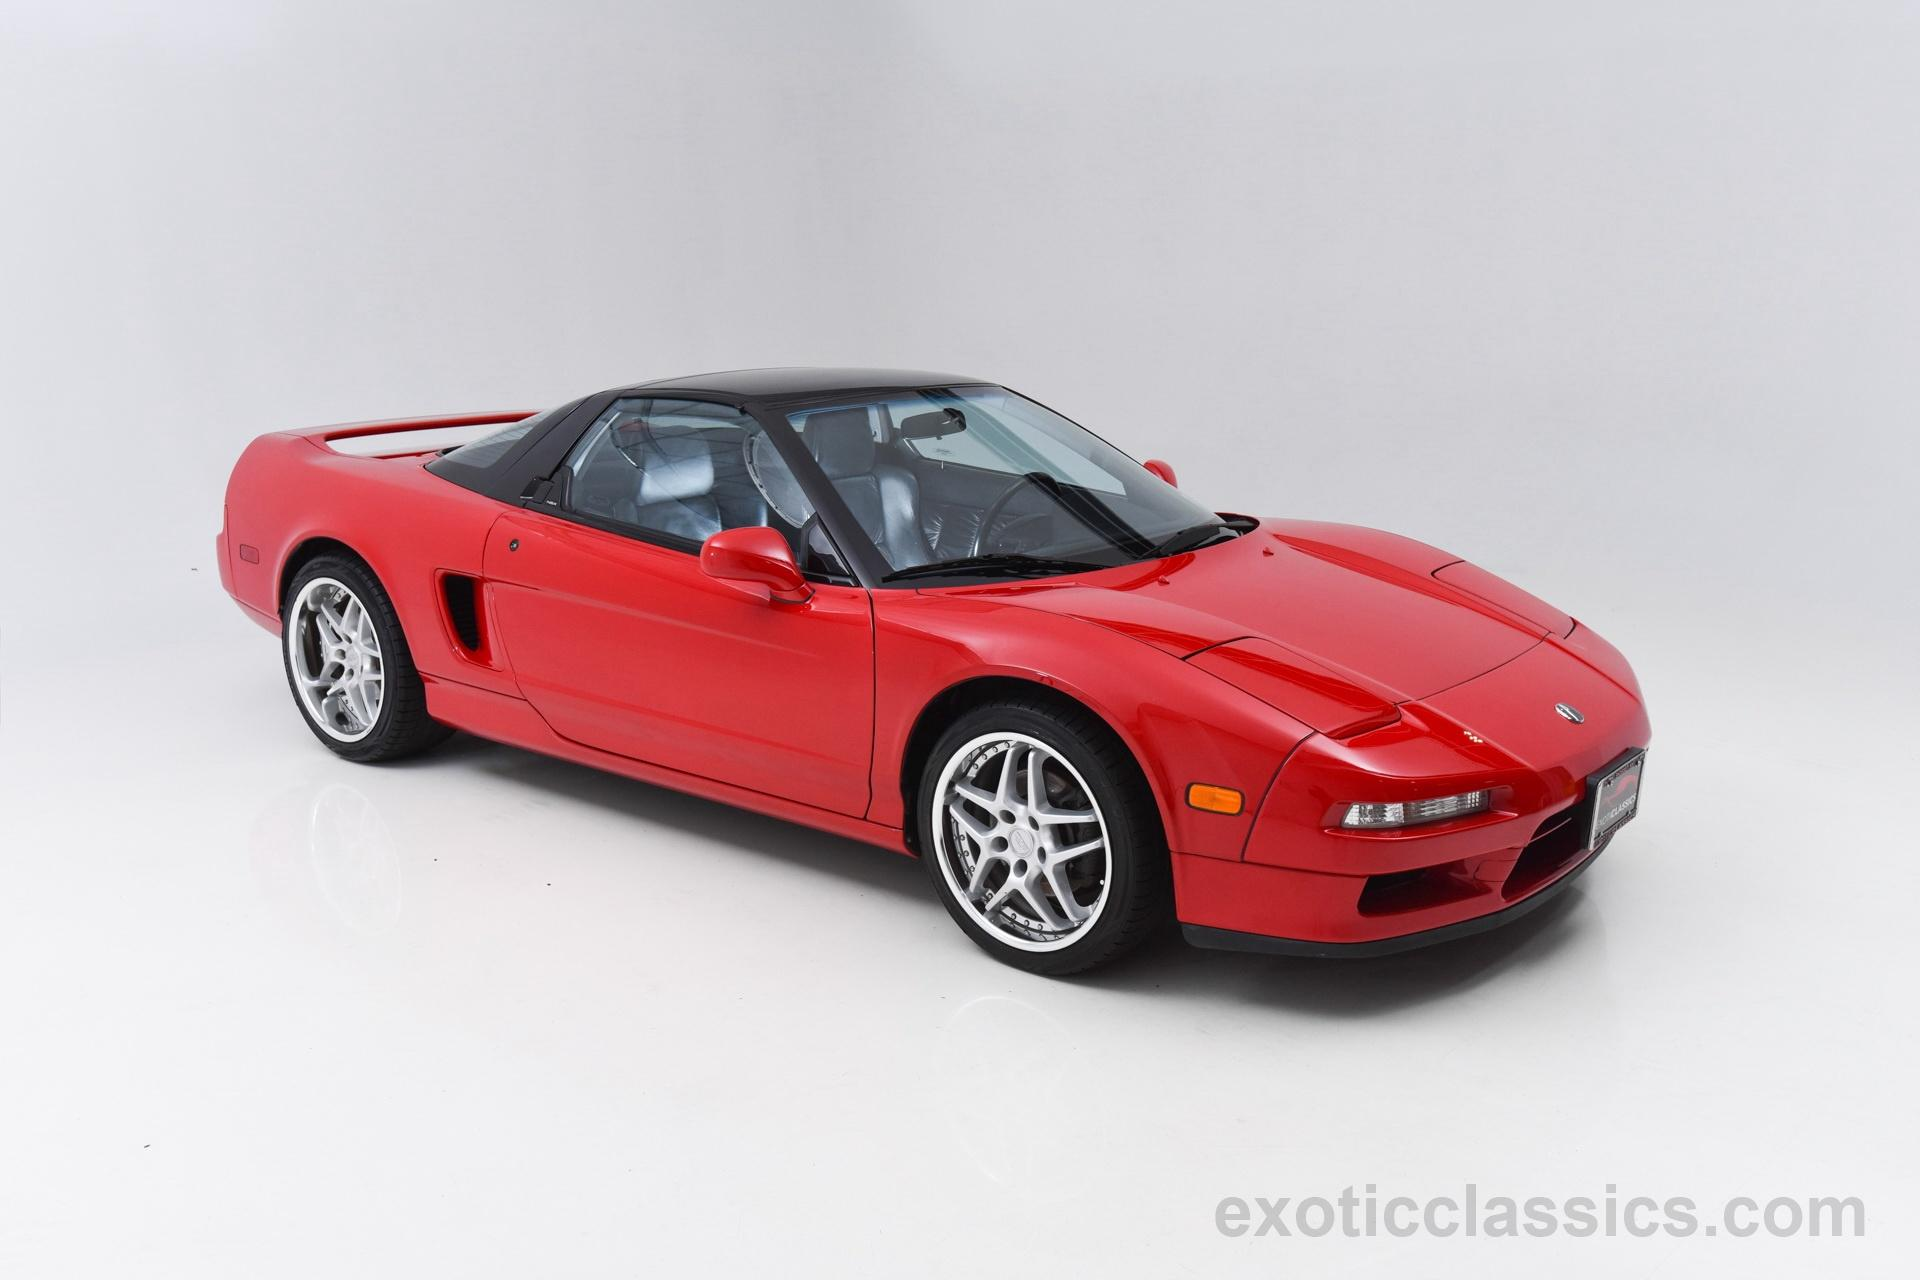 sale rk for nsx motors classic acura hd vehicles performance and cars